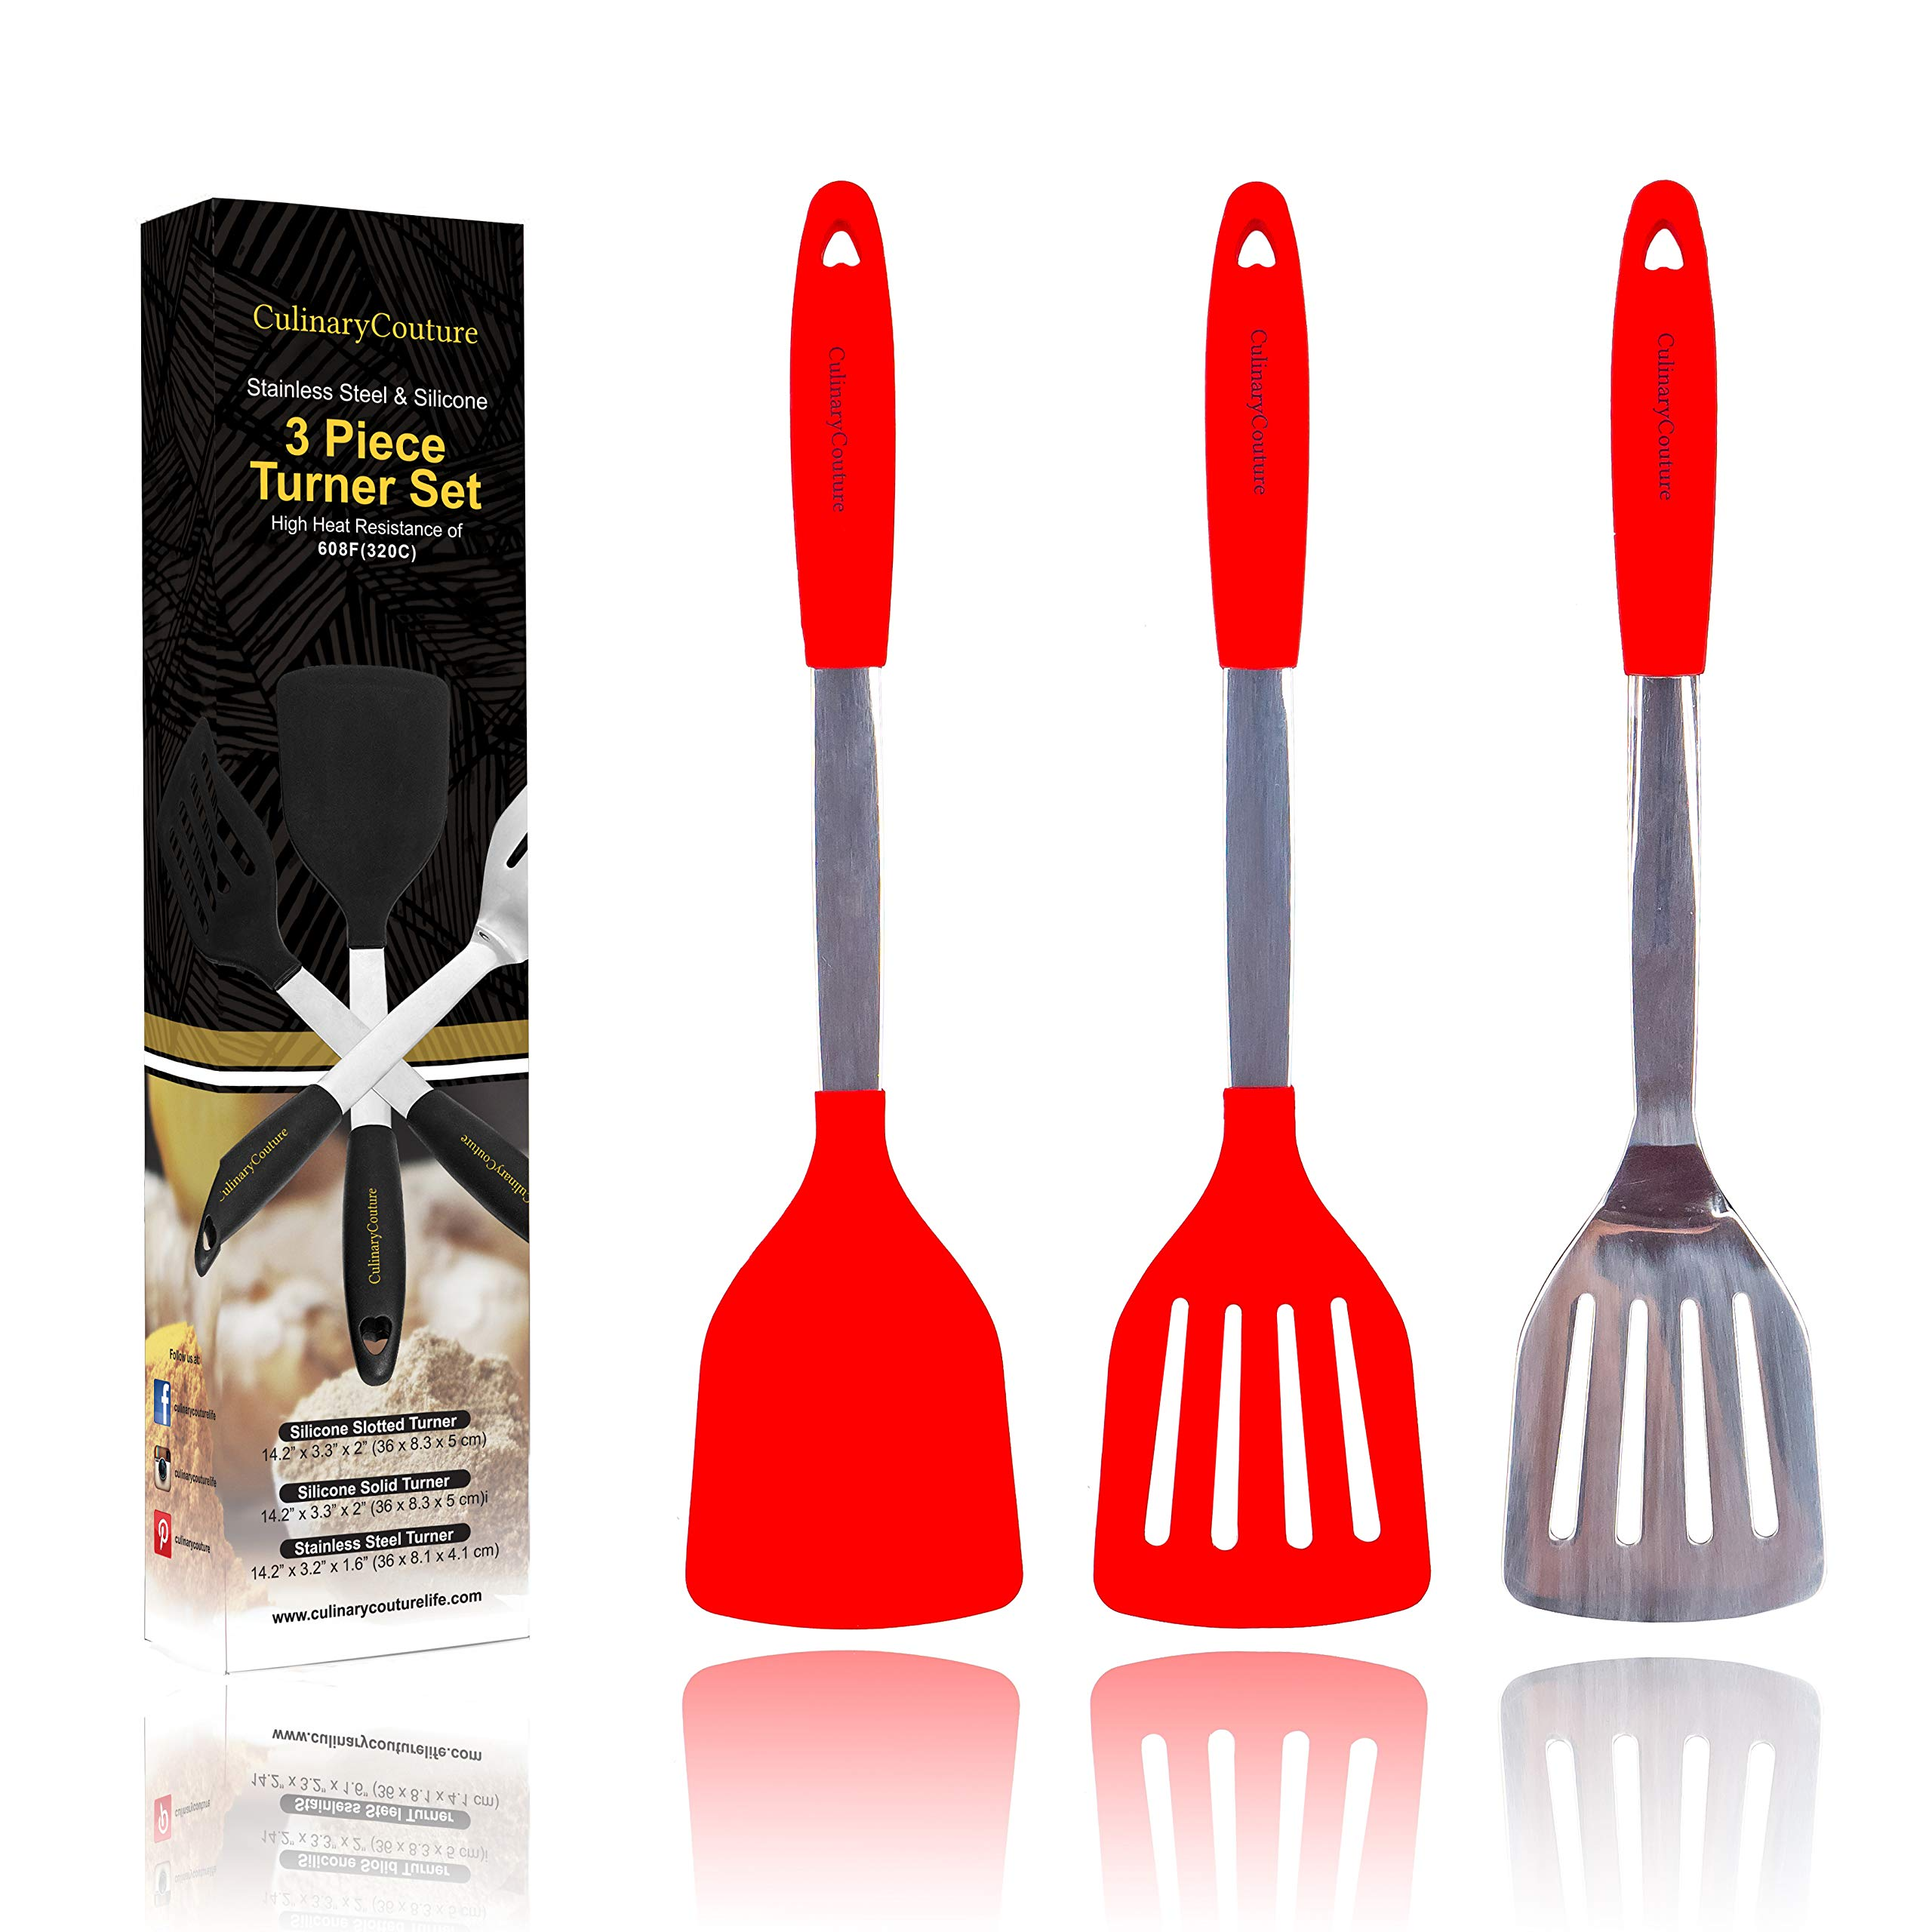 Red Silicone Spatula Turner Set – Stainless Steel and Silicone Heat Resistant Kitchen Utensils – 608F – Grill Spatula Tools for BBQ - Egg and Pancake Flipper – Gift Box and Bonus Recipe Ebook